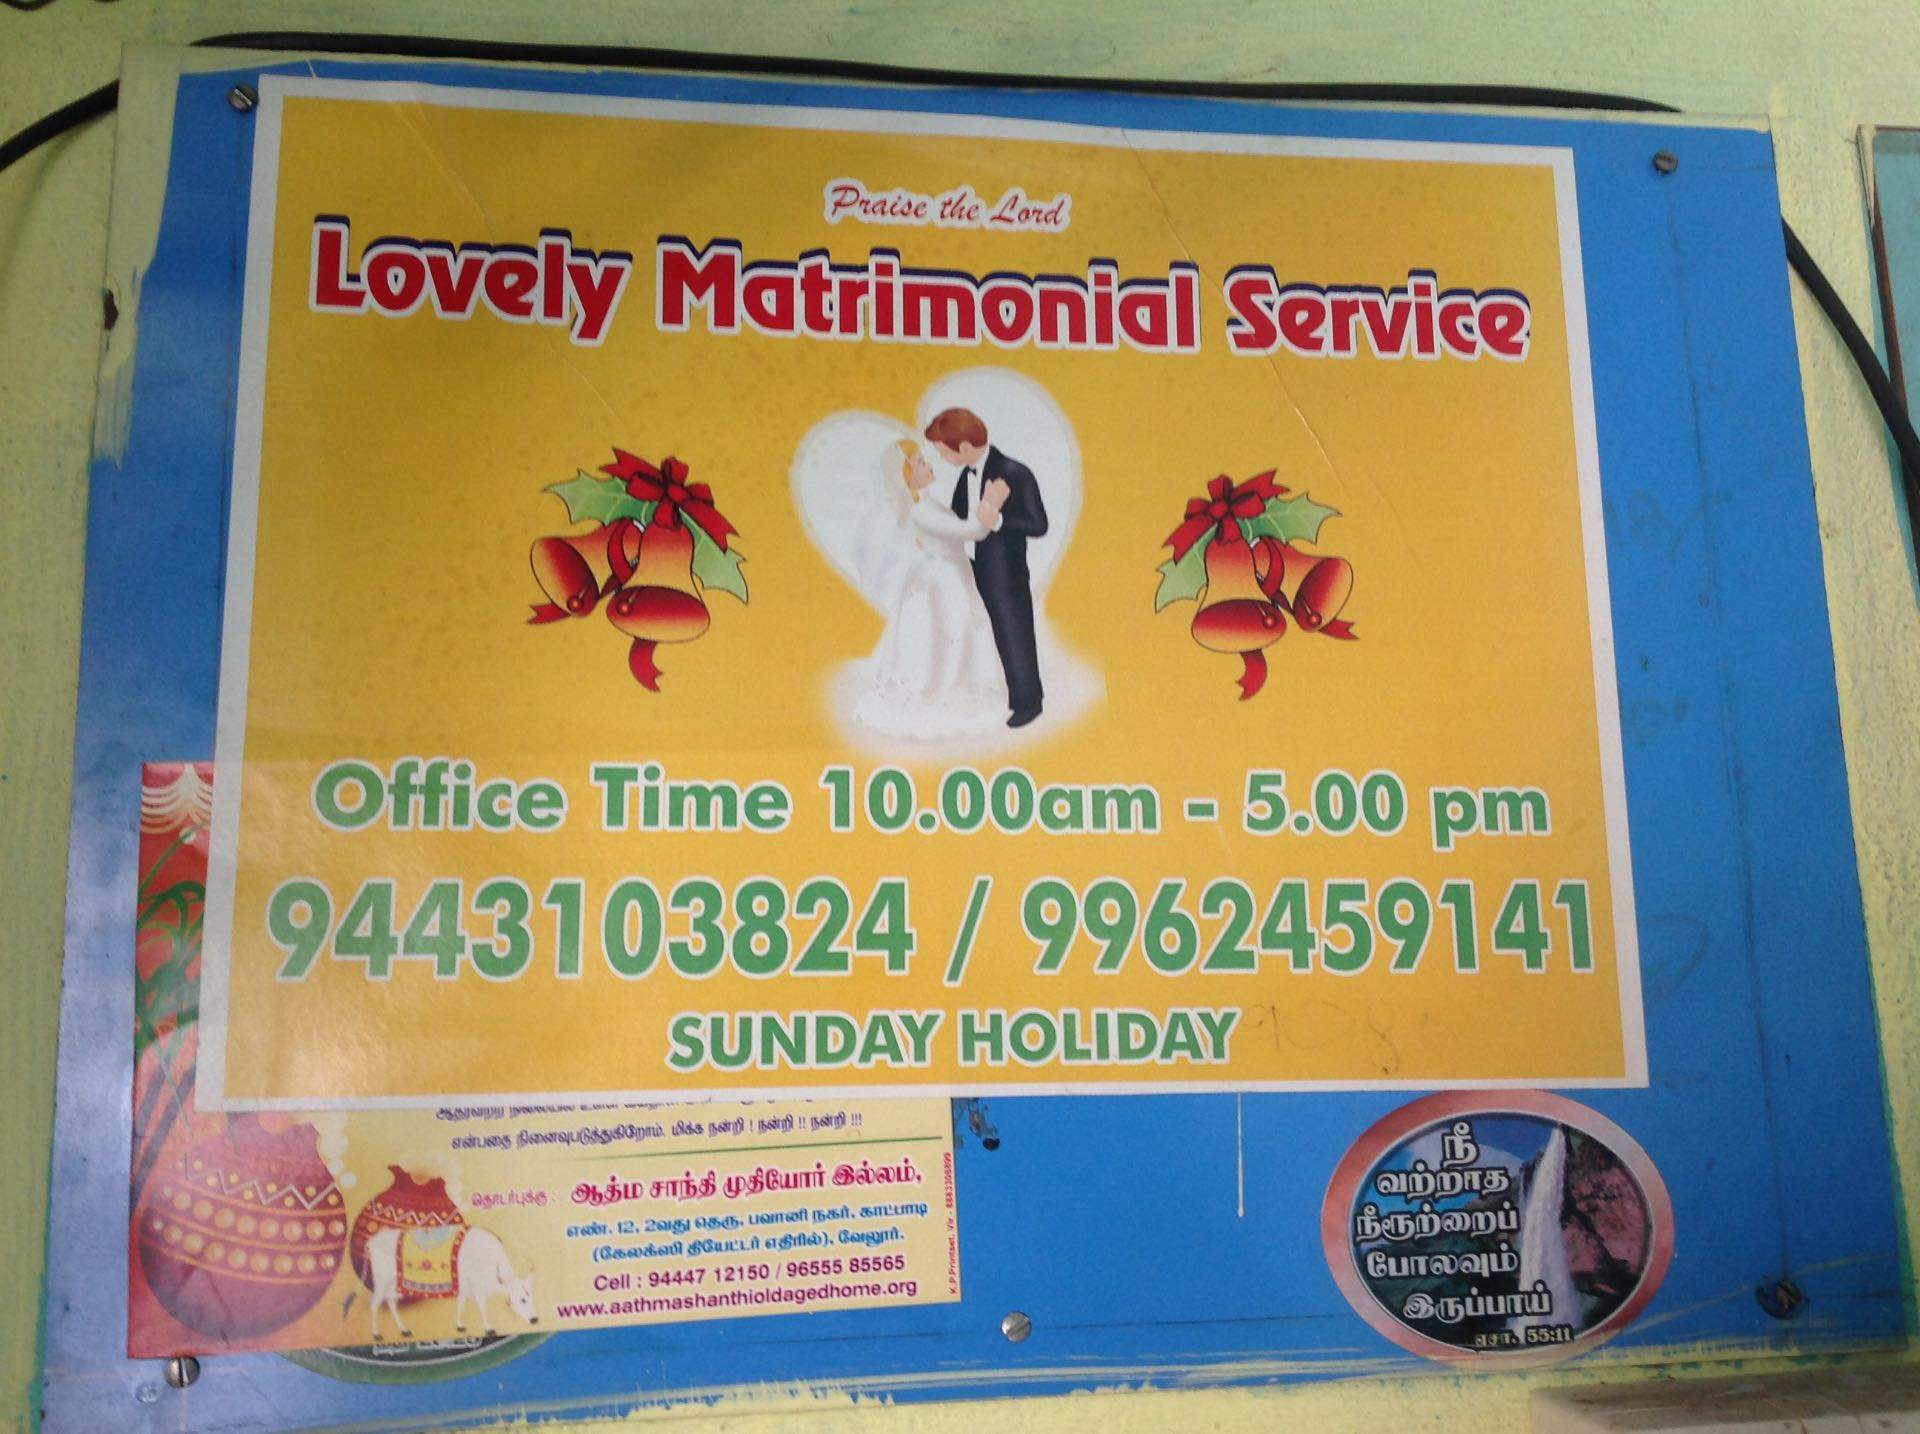 Top Matrimonial Bureaus For Mudaliar in Katpadi - Best